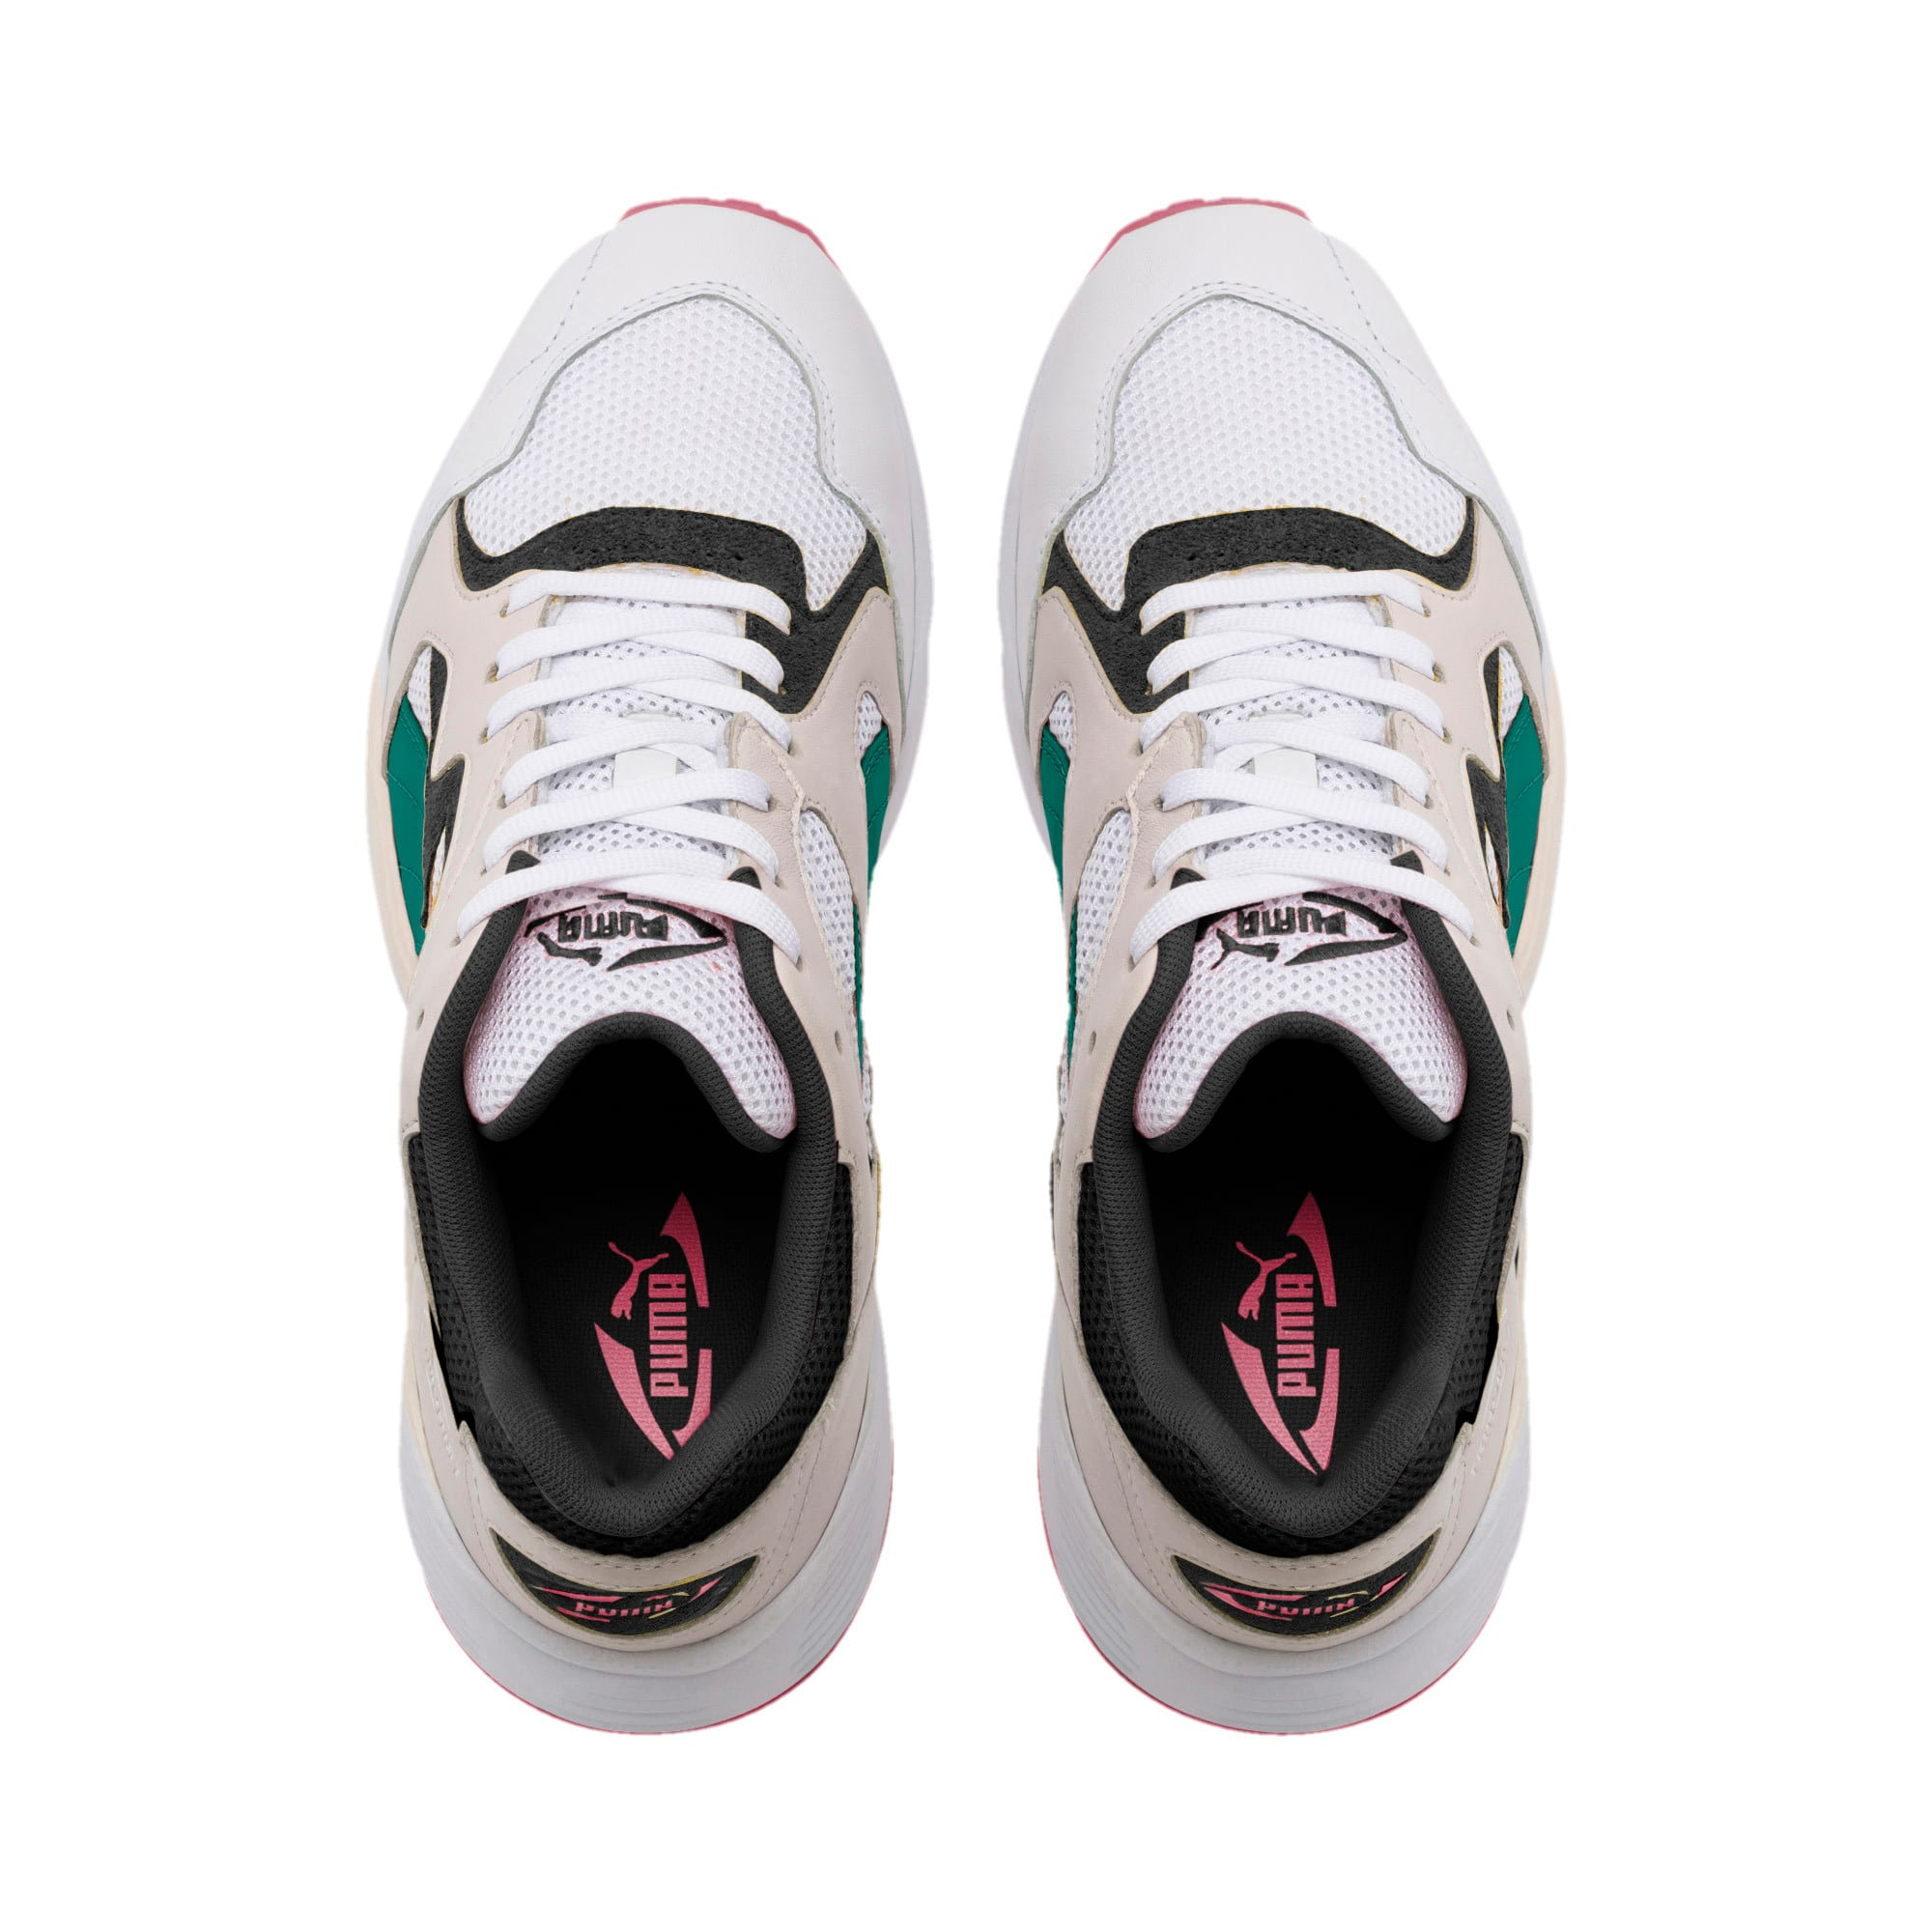 Thumbnail 6 of Prevail Classic Trainers, Puma White-Teal Green, medium